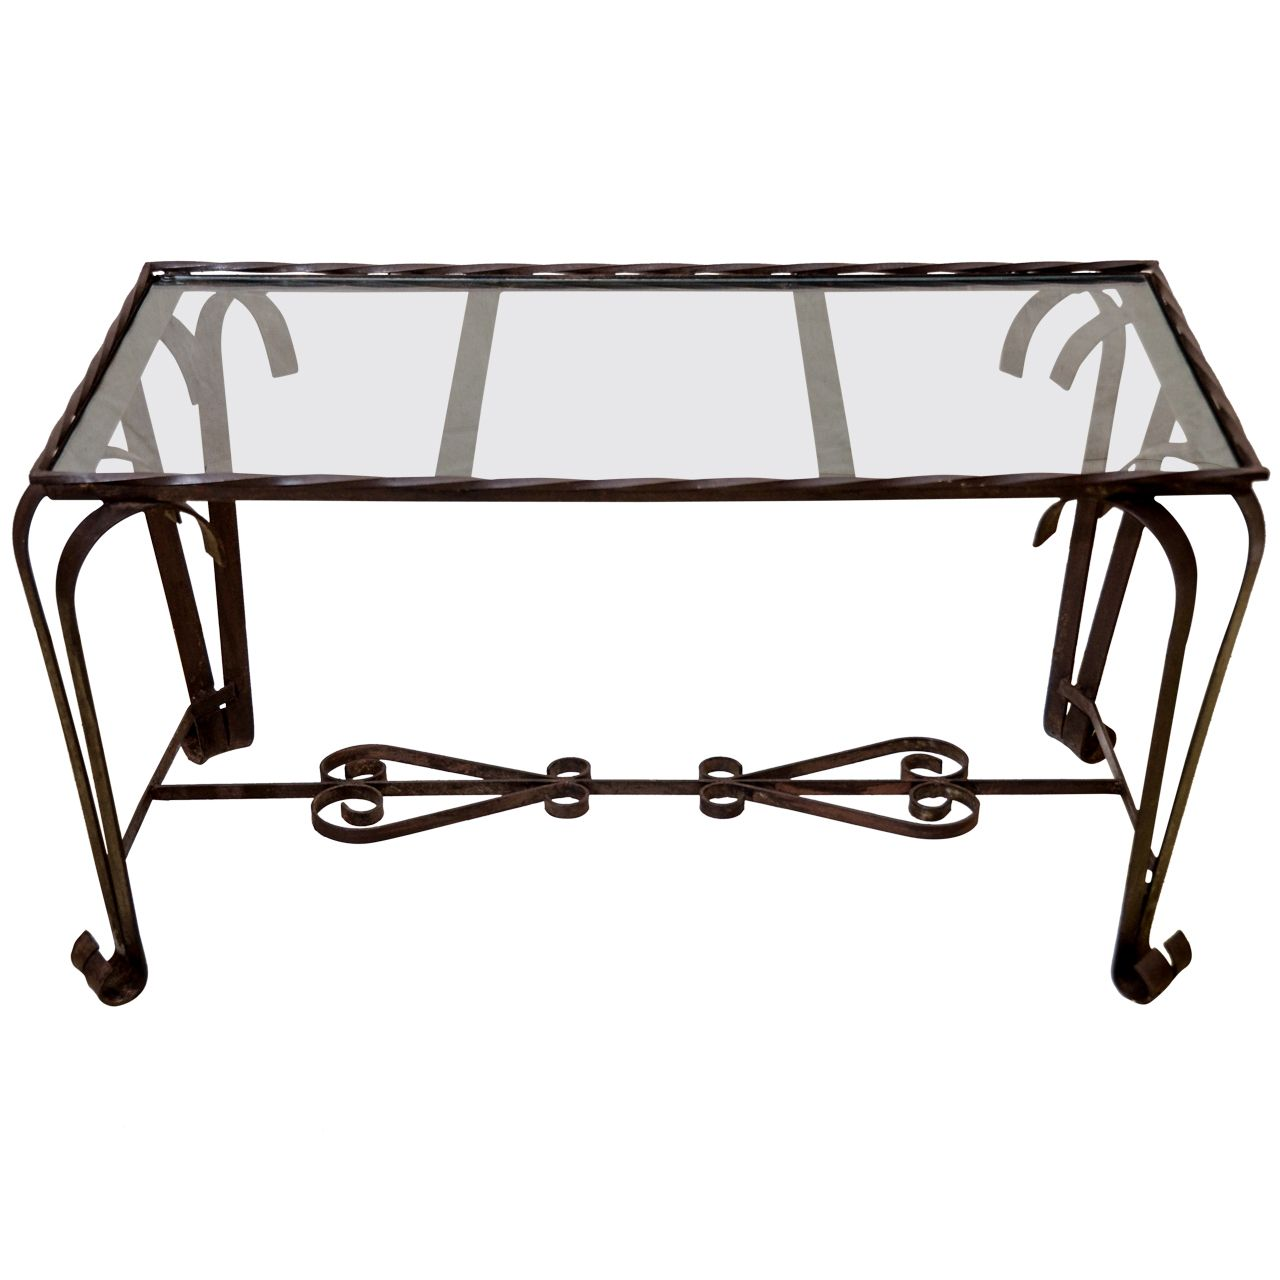 Exquisite Furniture For Living Room Decoration Using Wrought Iron Coffee Table With Glass Top Fetchi Iron Coffee Table Glass Top Coffee Table Iron Table Legs [ 1280 x 1280 Pixel ]